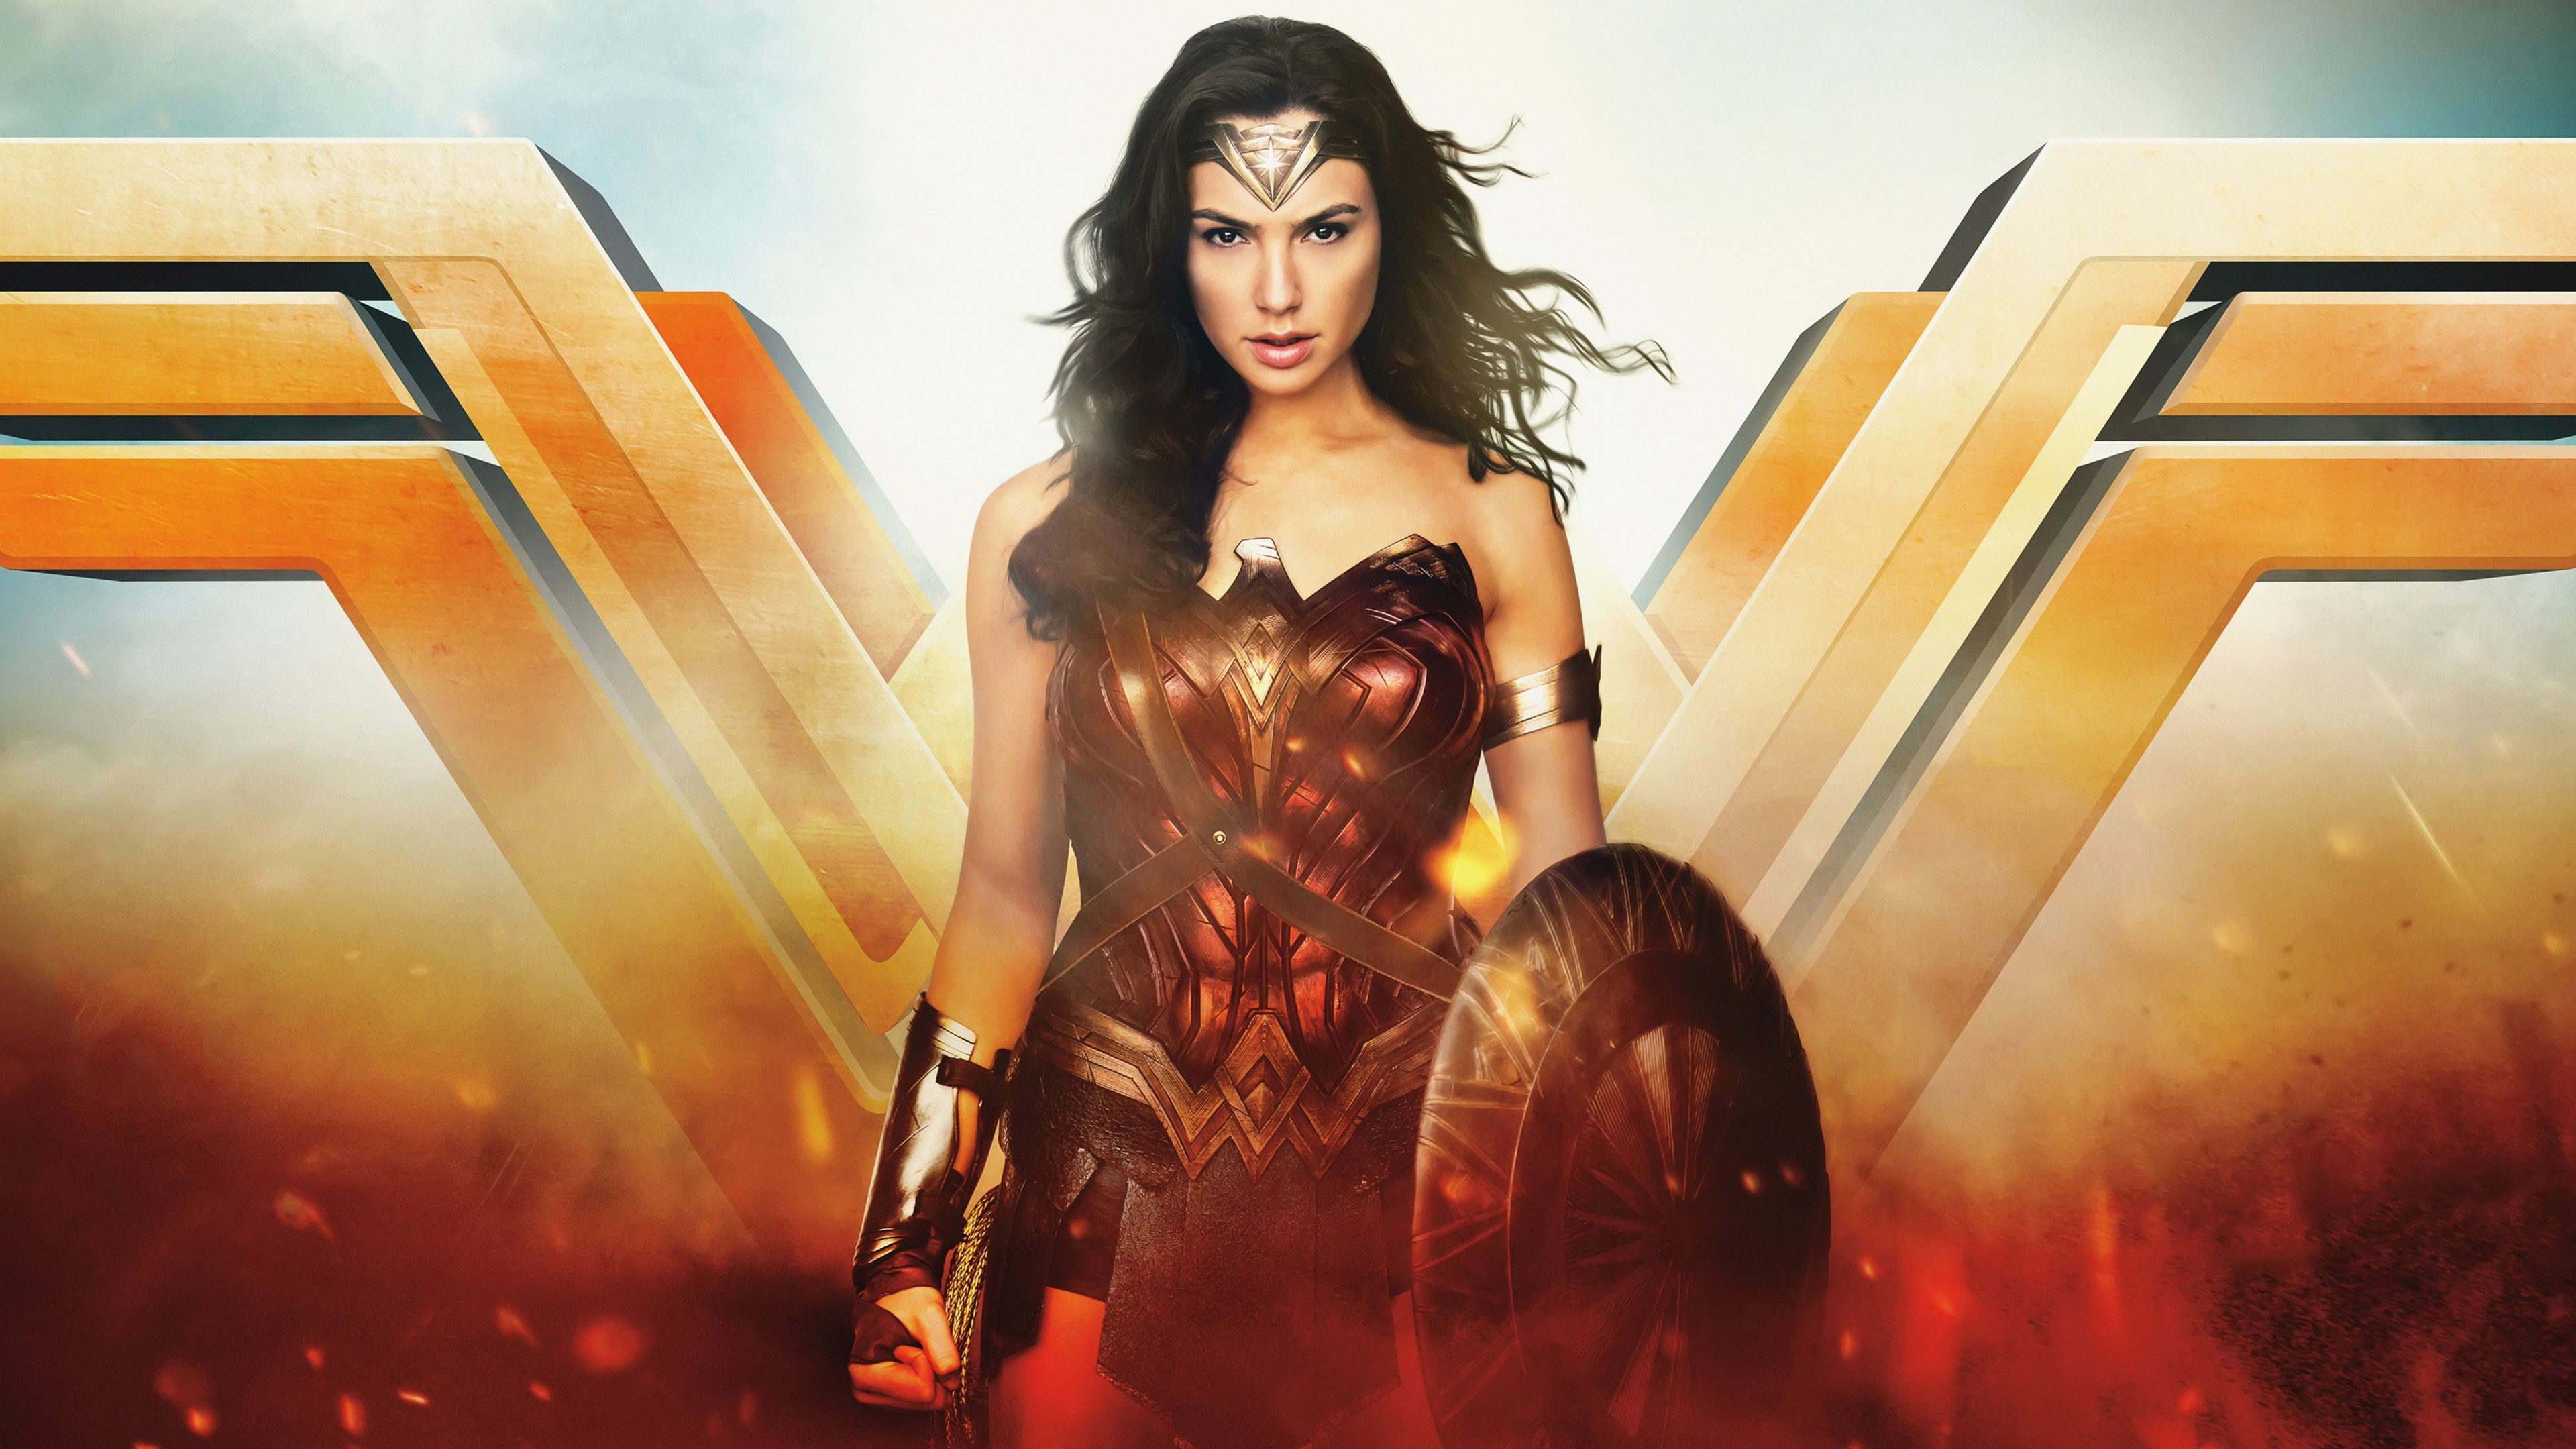 Download Latest Gal Gadot Wonder Woman 2017 4k Wallpaper Images Pictures Desktop And Backgrounds Are Ready For Yo Wonder Woman Movie Wonder Woman Gal Gadot